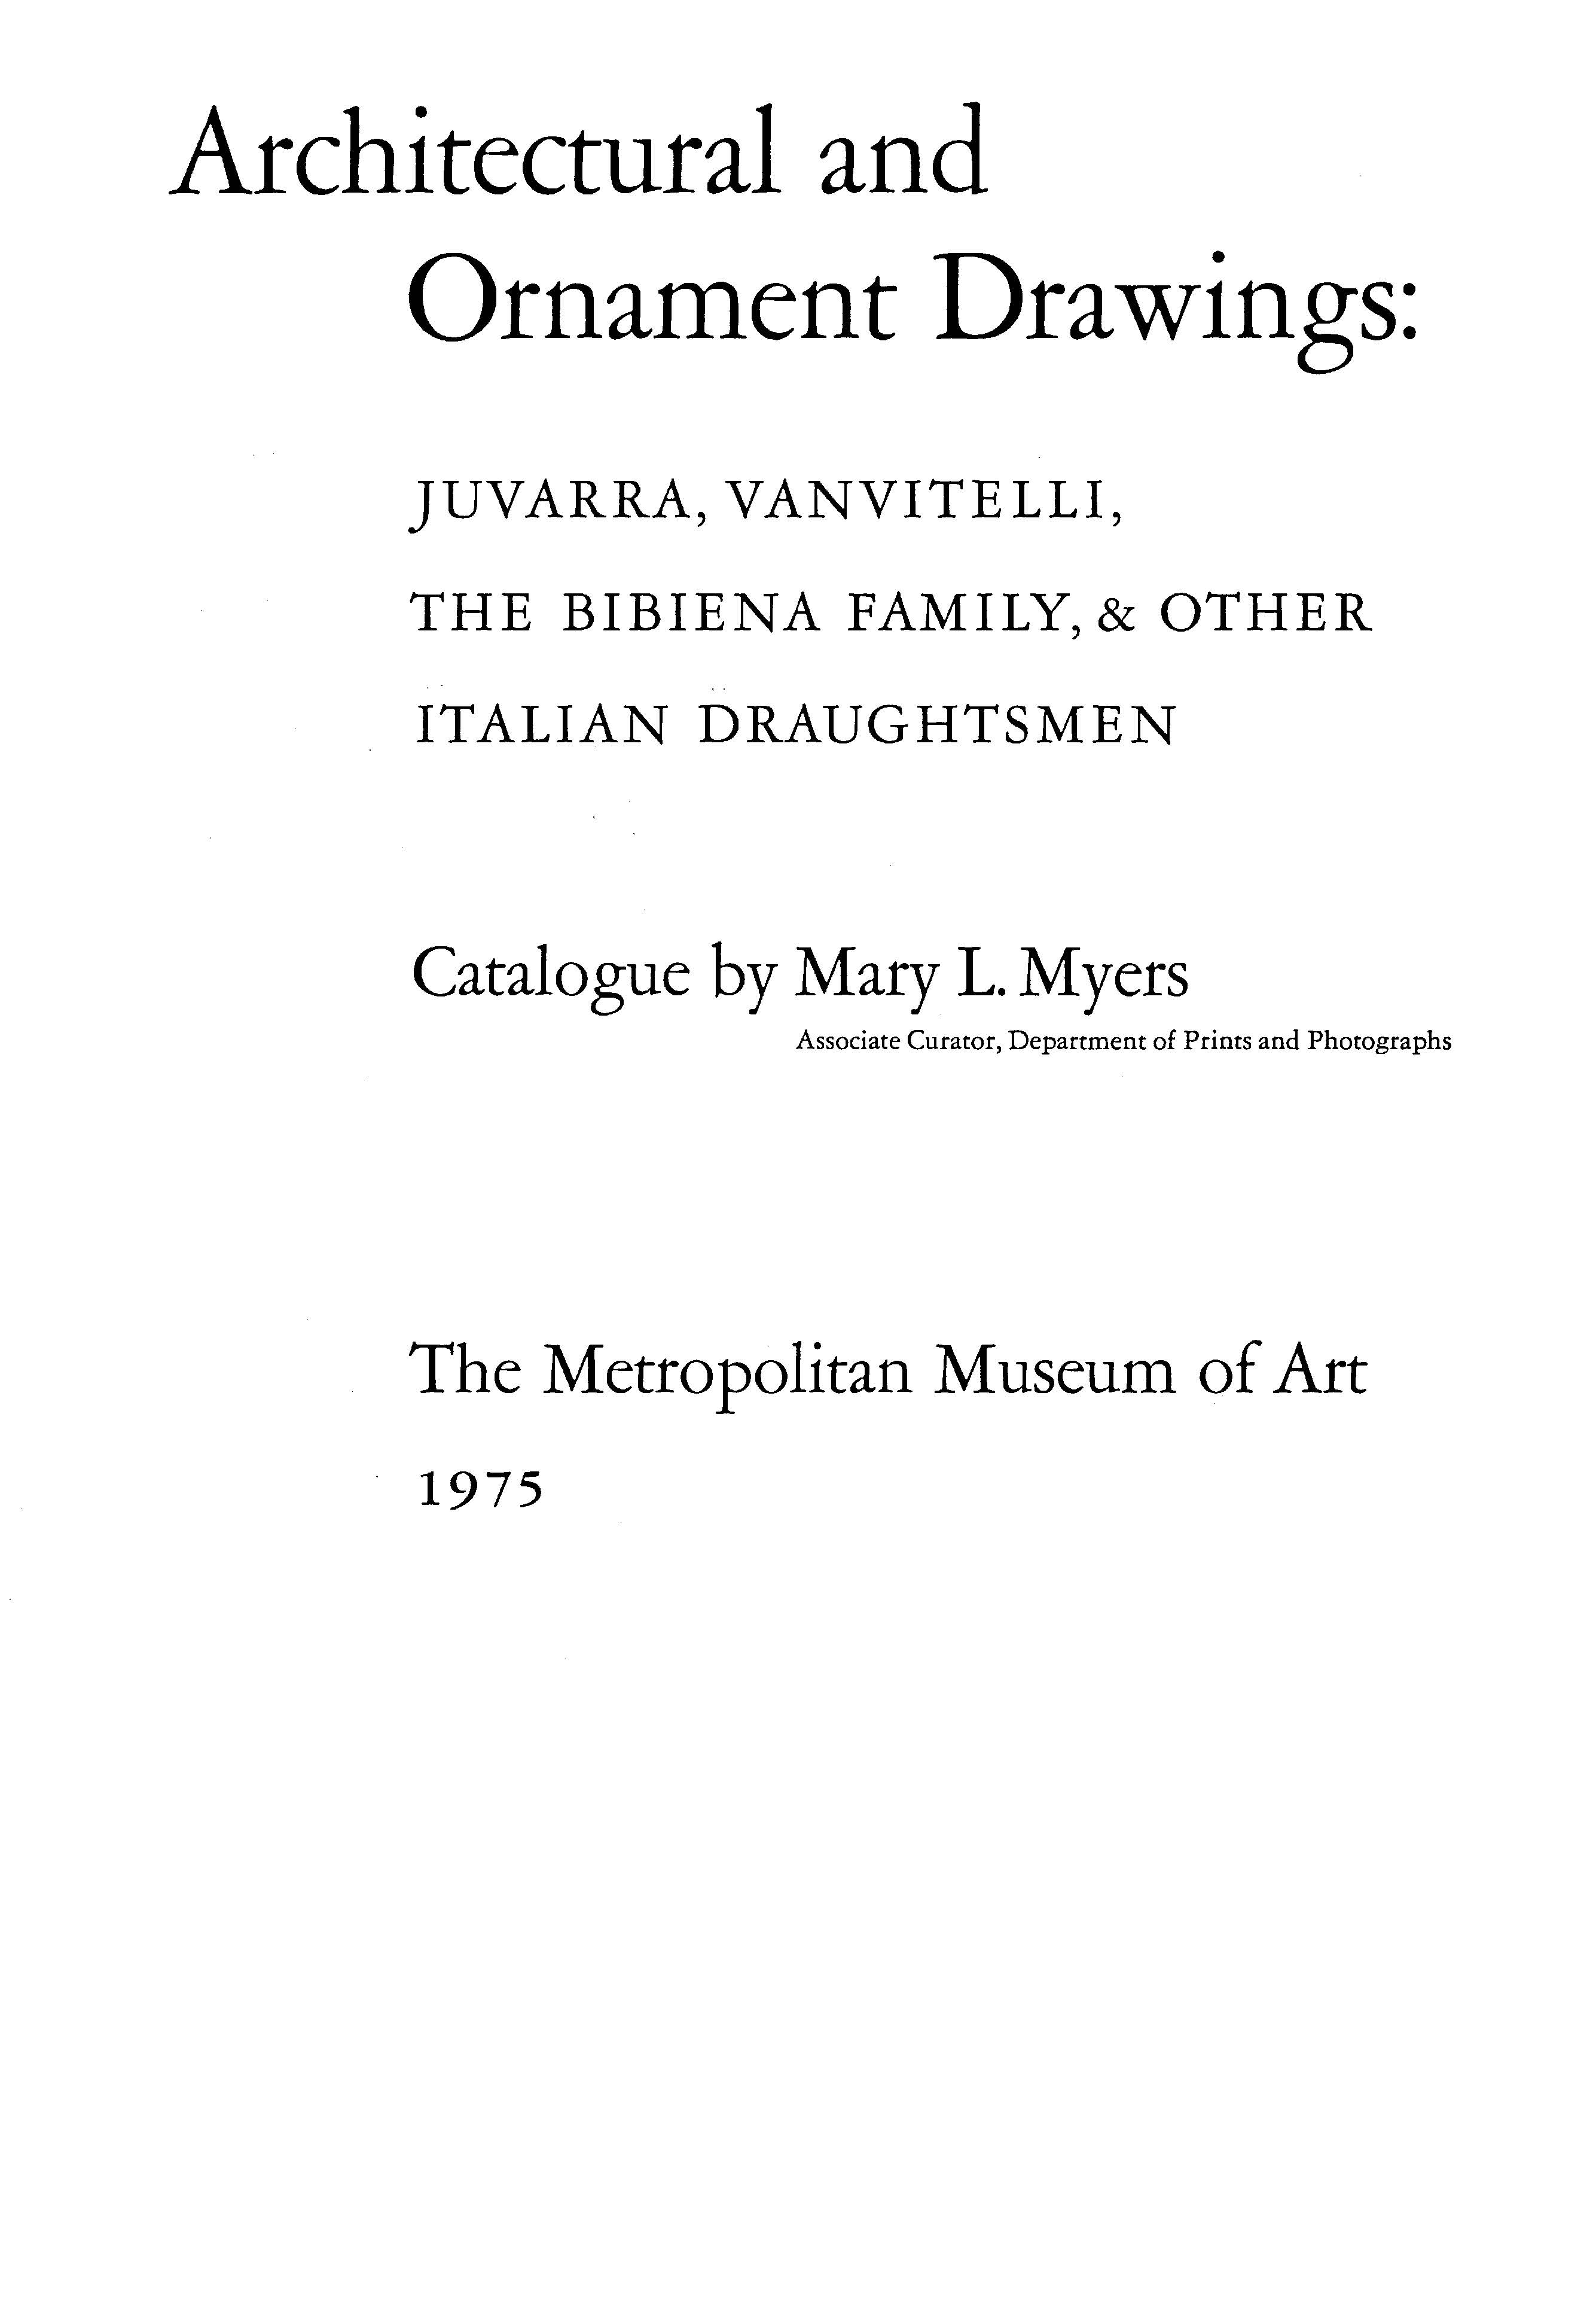 Architectural and Ornament Drawings: Juvarra, Vanvitelli, the Bibiena Family, and Other Italian Draughtsmen : Catalogue by Mary L. Myers. — New York : The Metropolitan Museum of Art, 1975